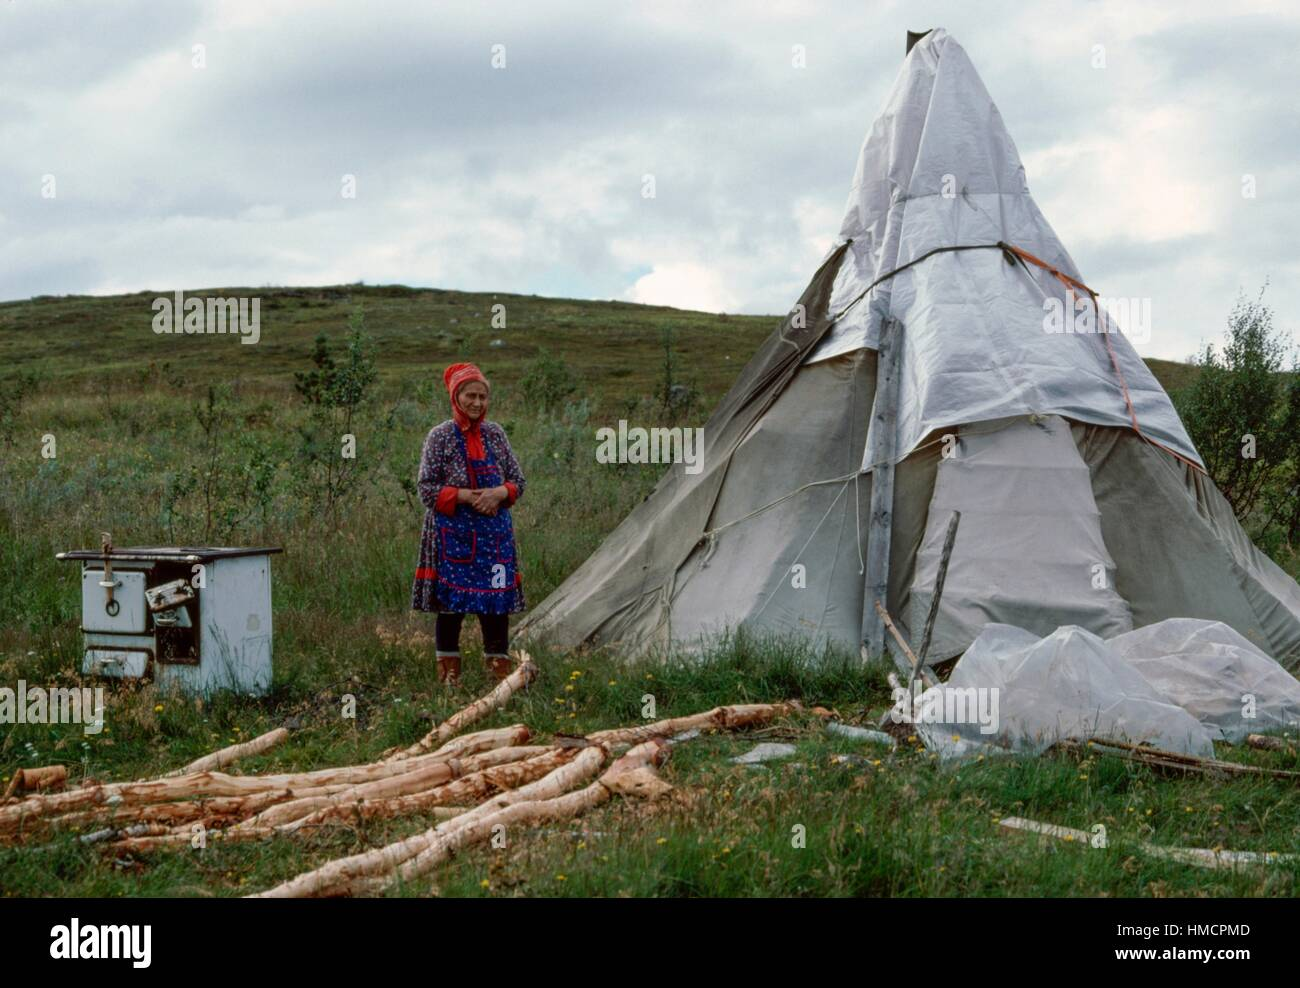 Sami (Laplander) woman next to a traditional tent, Norway. - Stock Image